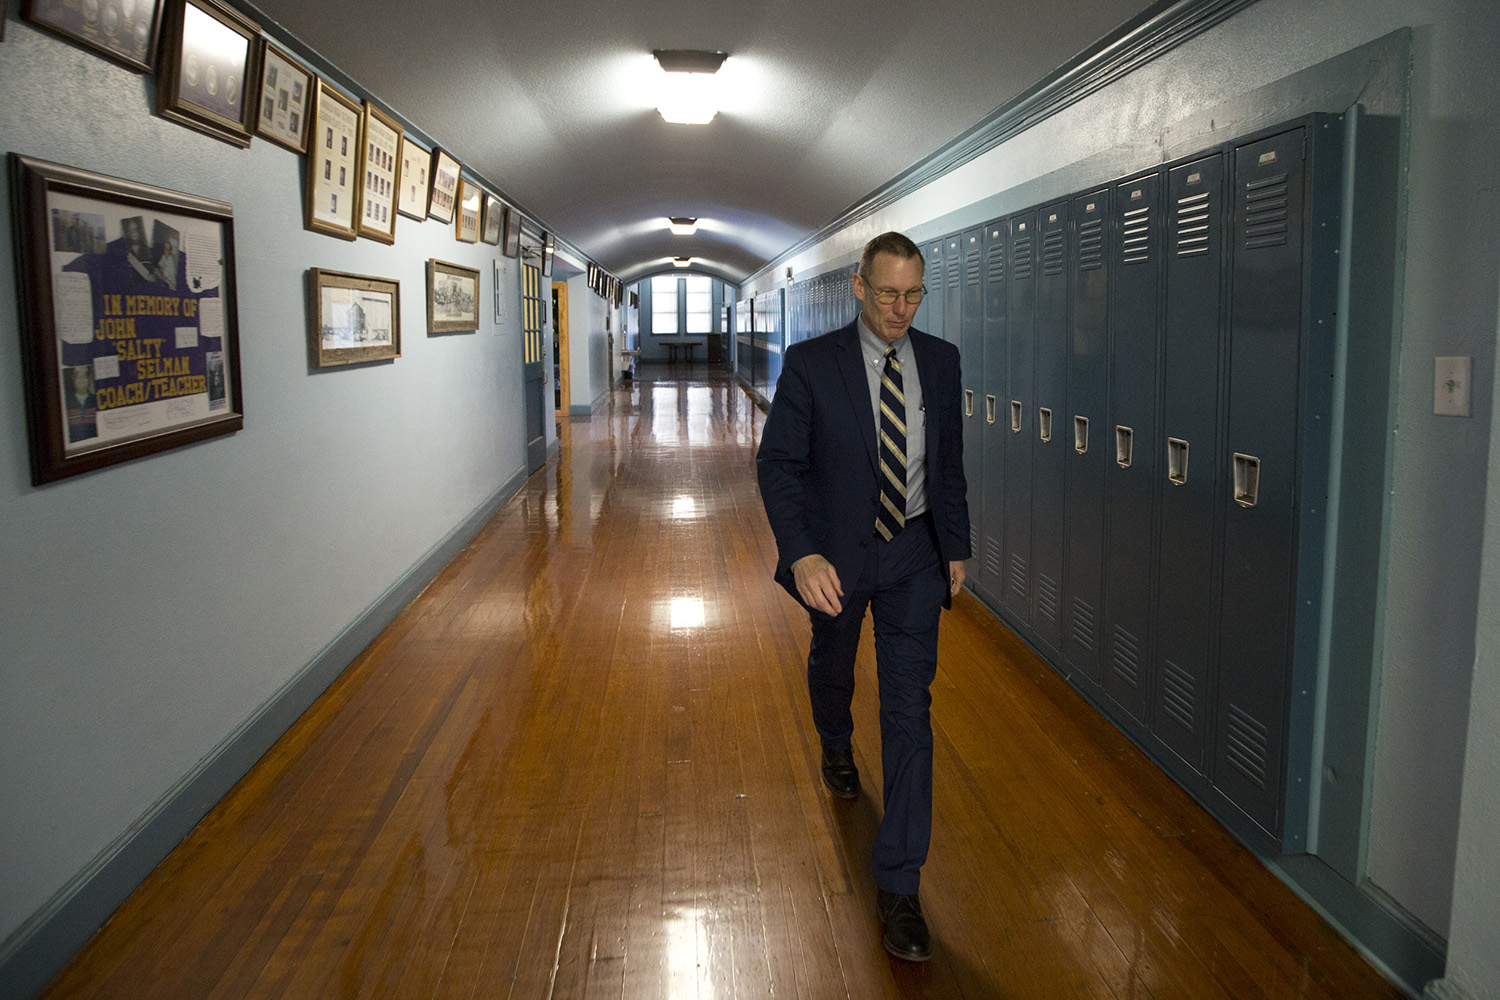 Harrold ISD Superintendent David Thweatt, in the K-12 school. Thweatt created the Guardian Plan, which allows chosen educators to carry on campus.